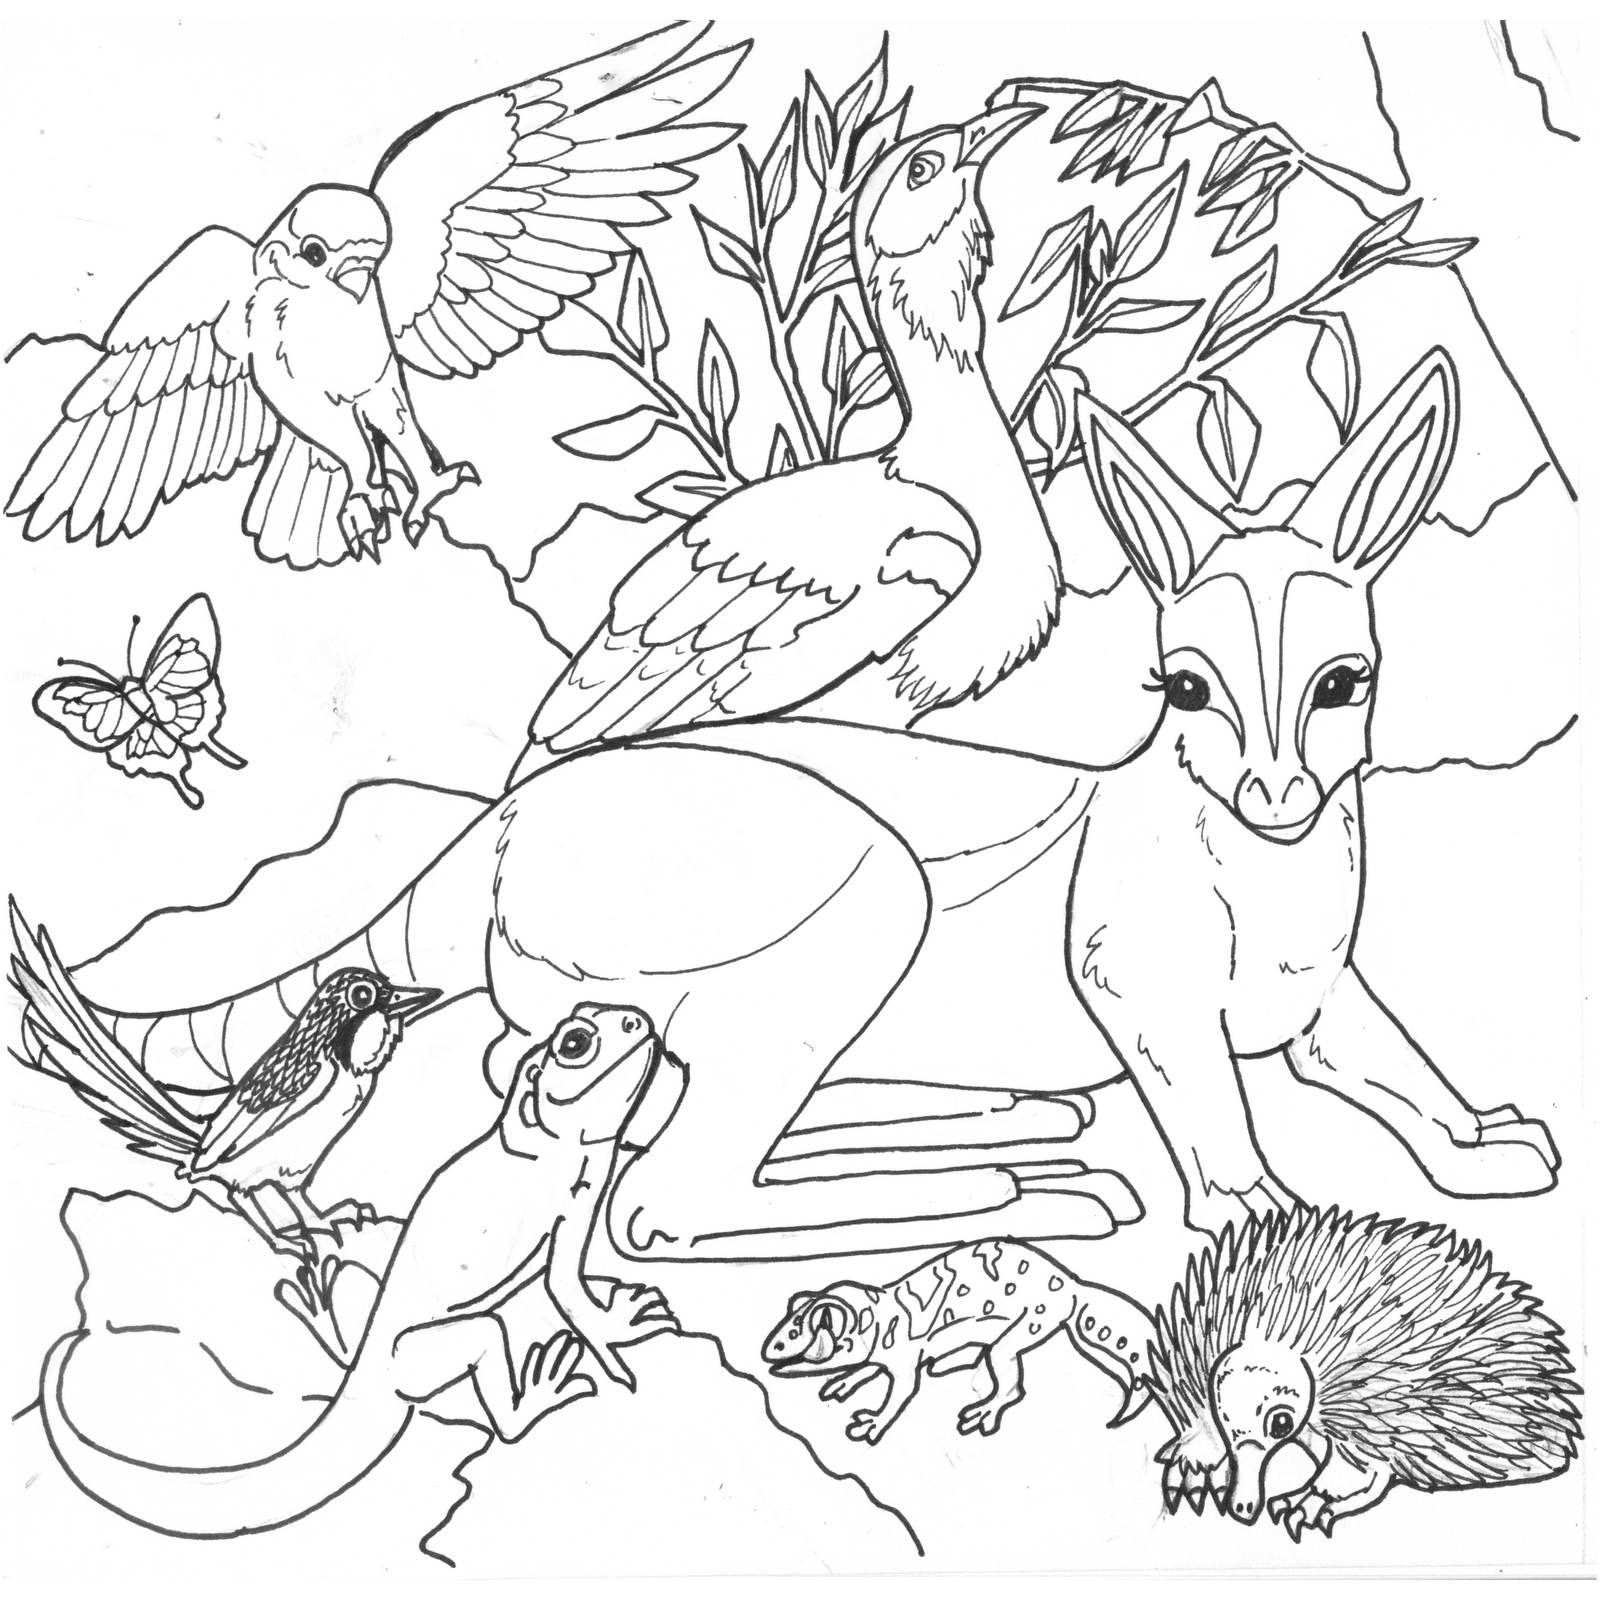 australia map coloring page high quality coloring pages australia